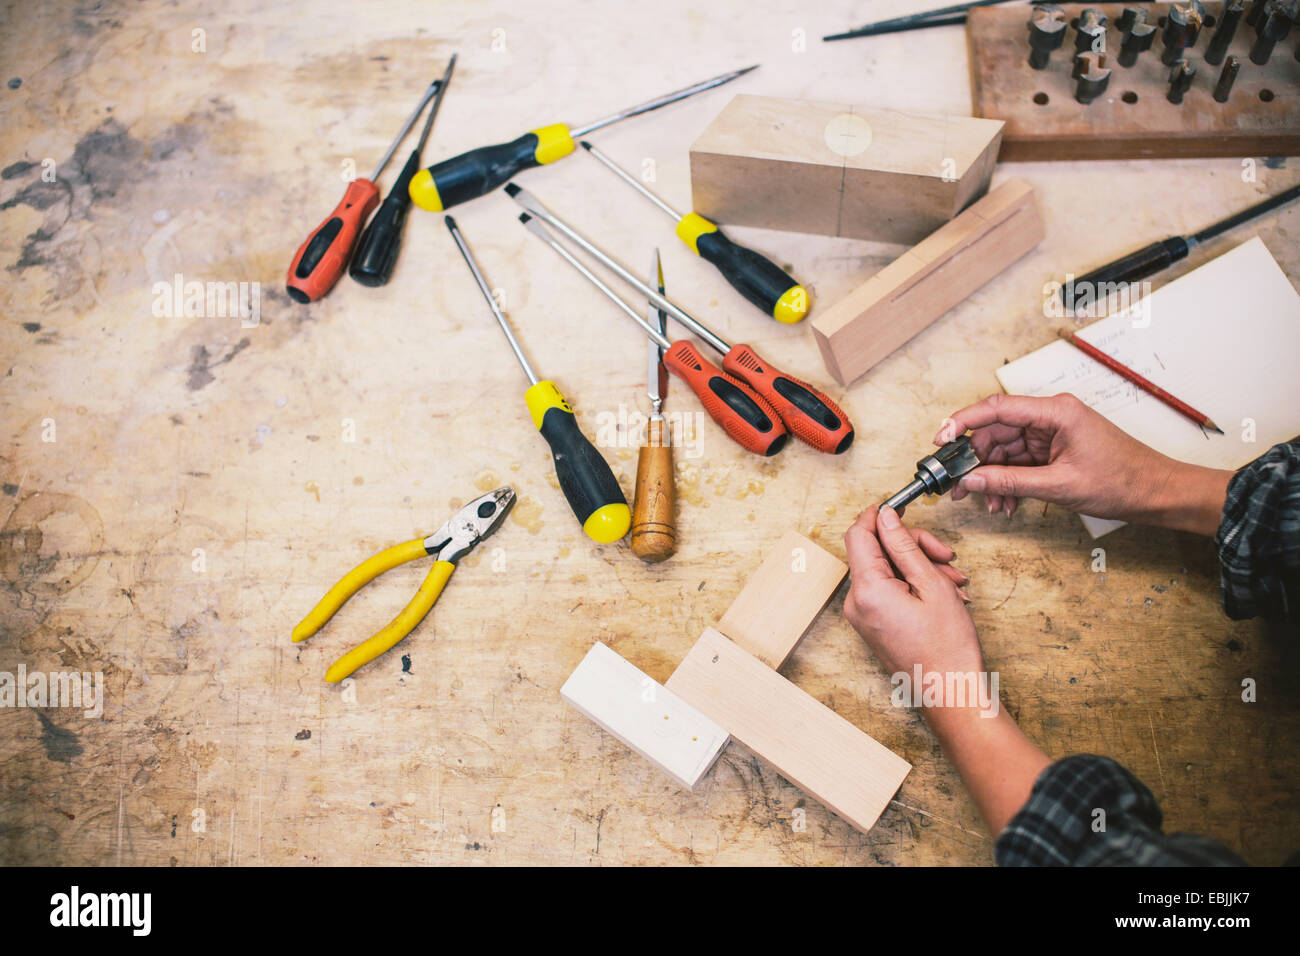 Hands of young craftswoman holding component in pipe organ workshop - Stock Image